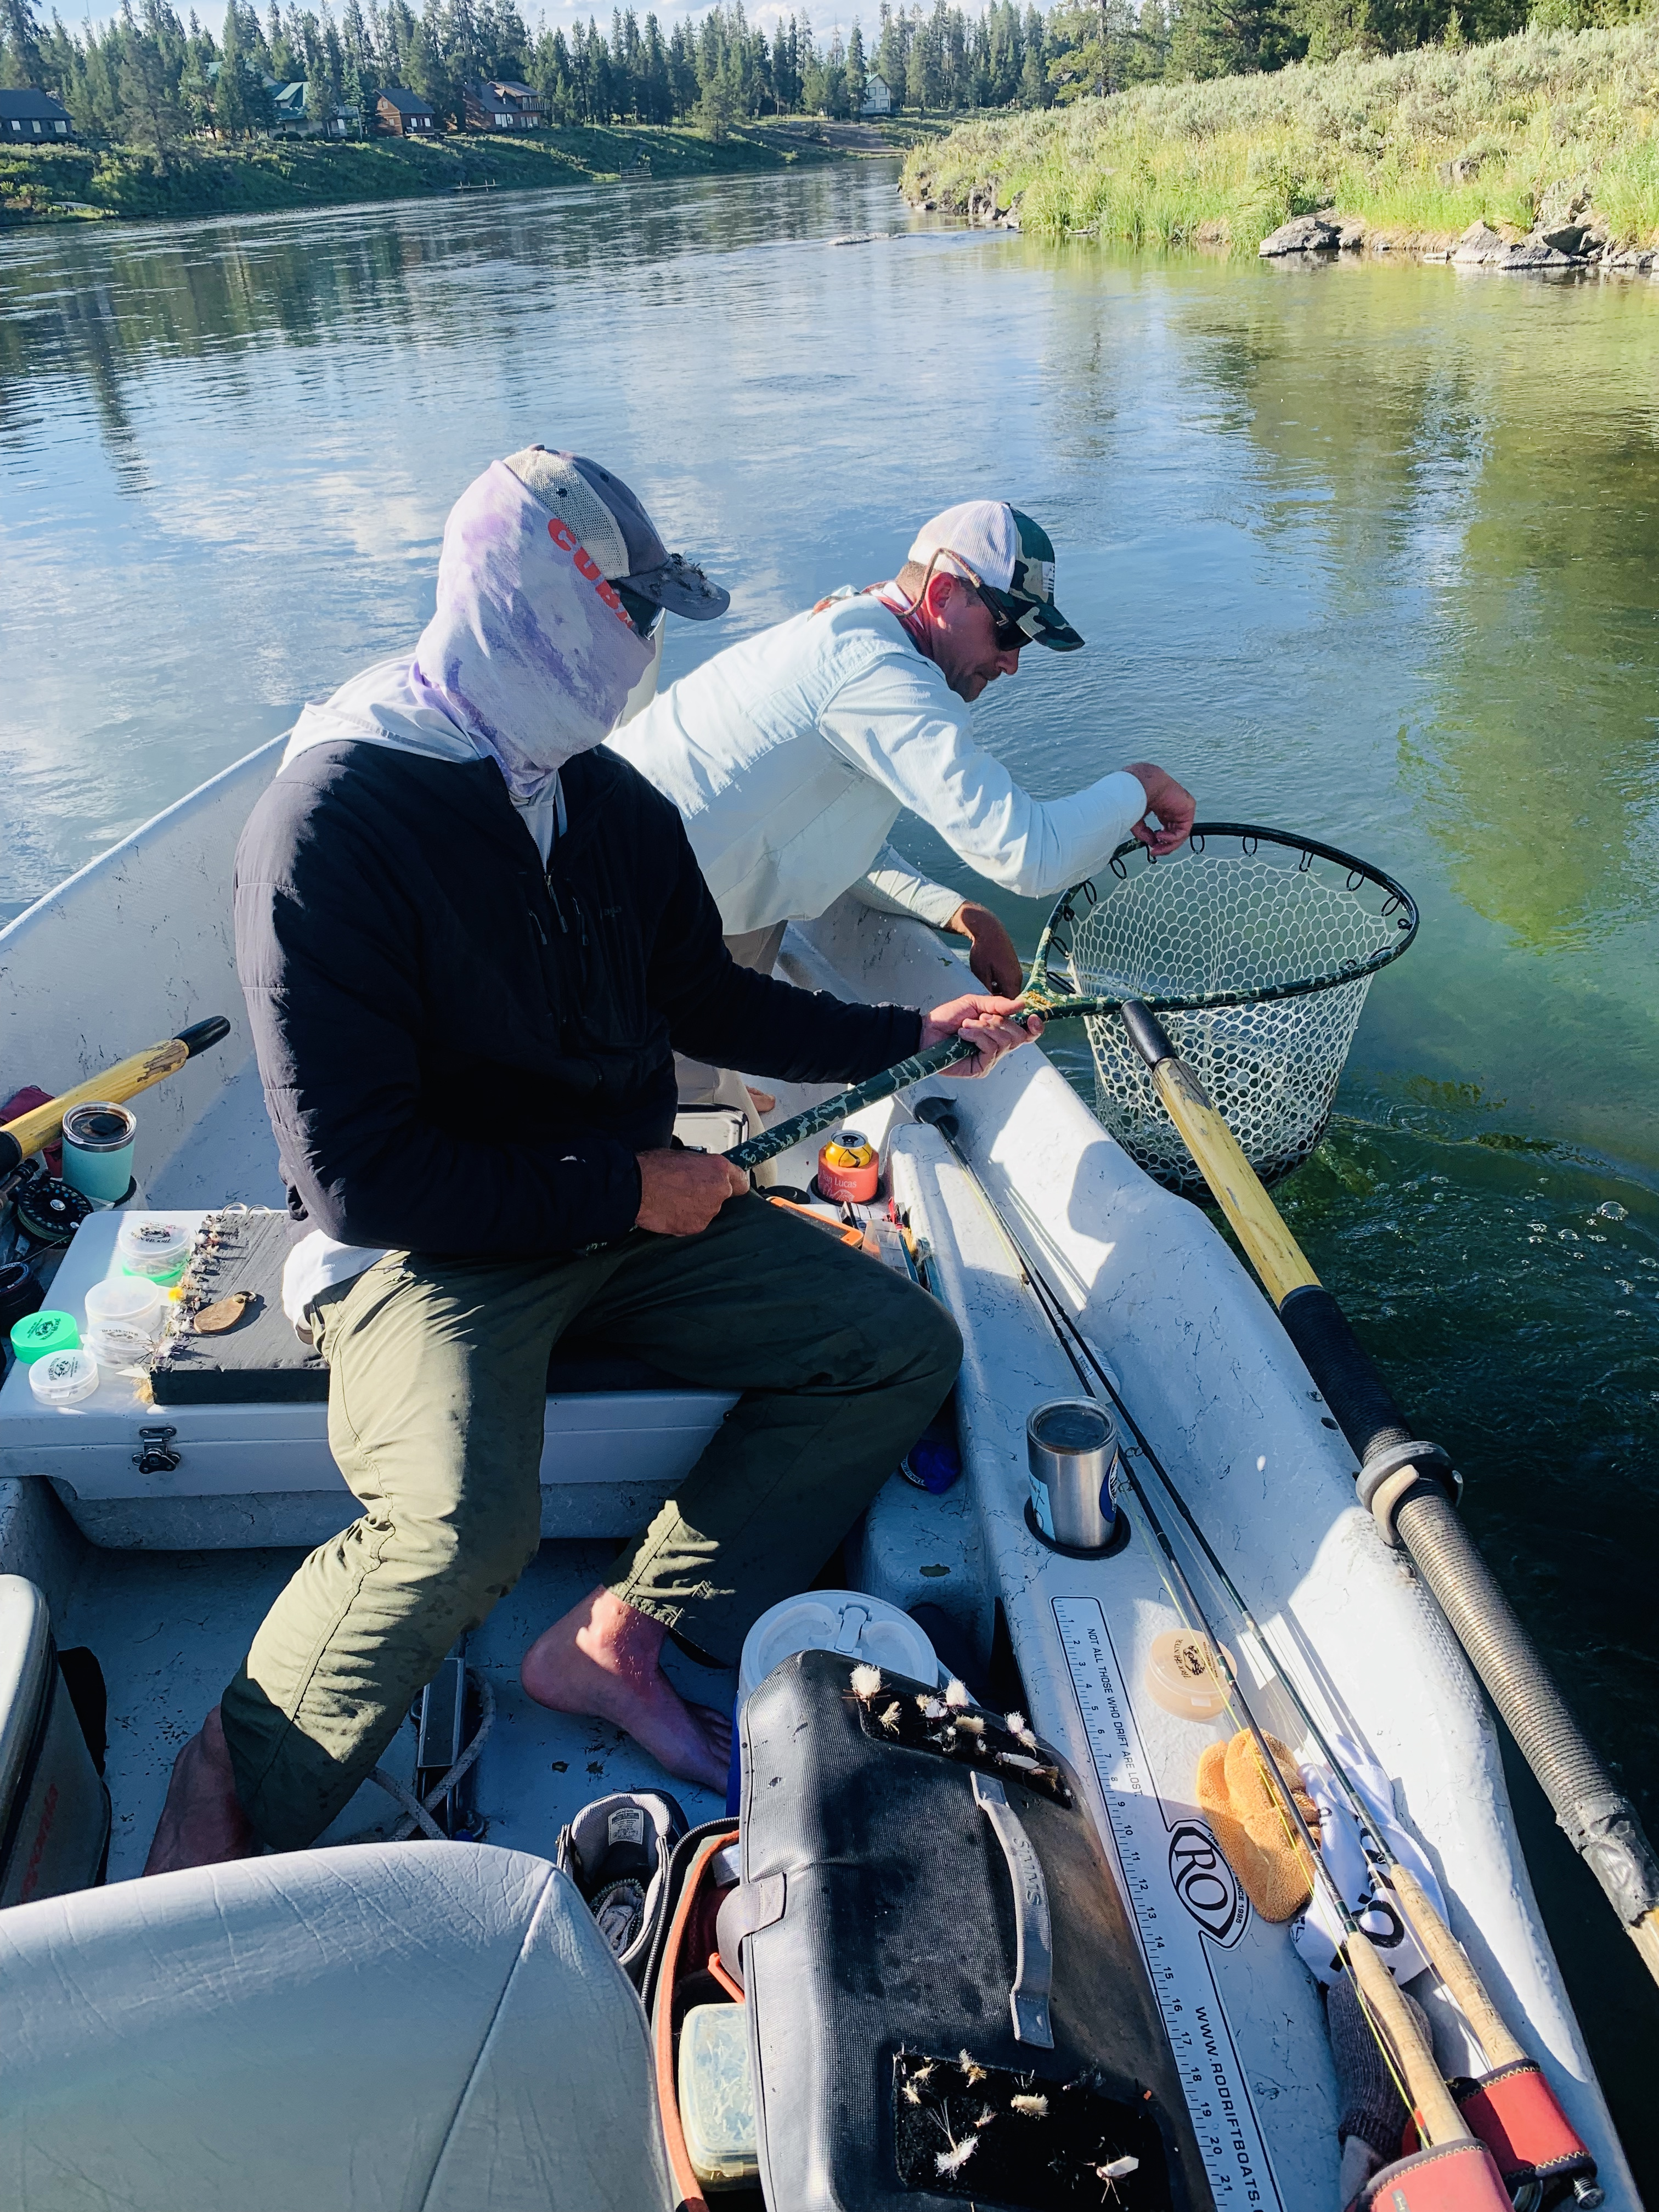 Patrick Gaffney of Trout Hunter Fly Fishing Guides helping to net a big fish out of the Henry's Fork River. For more travel and food posts check out sprouting-vitality.com #sproutingvitality #kenzinthekitch #mckenzieonthemove